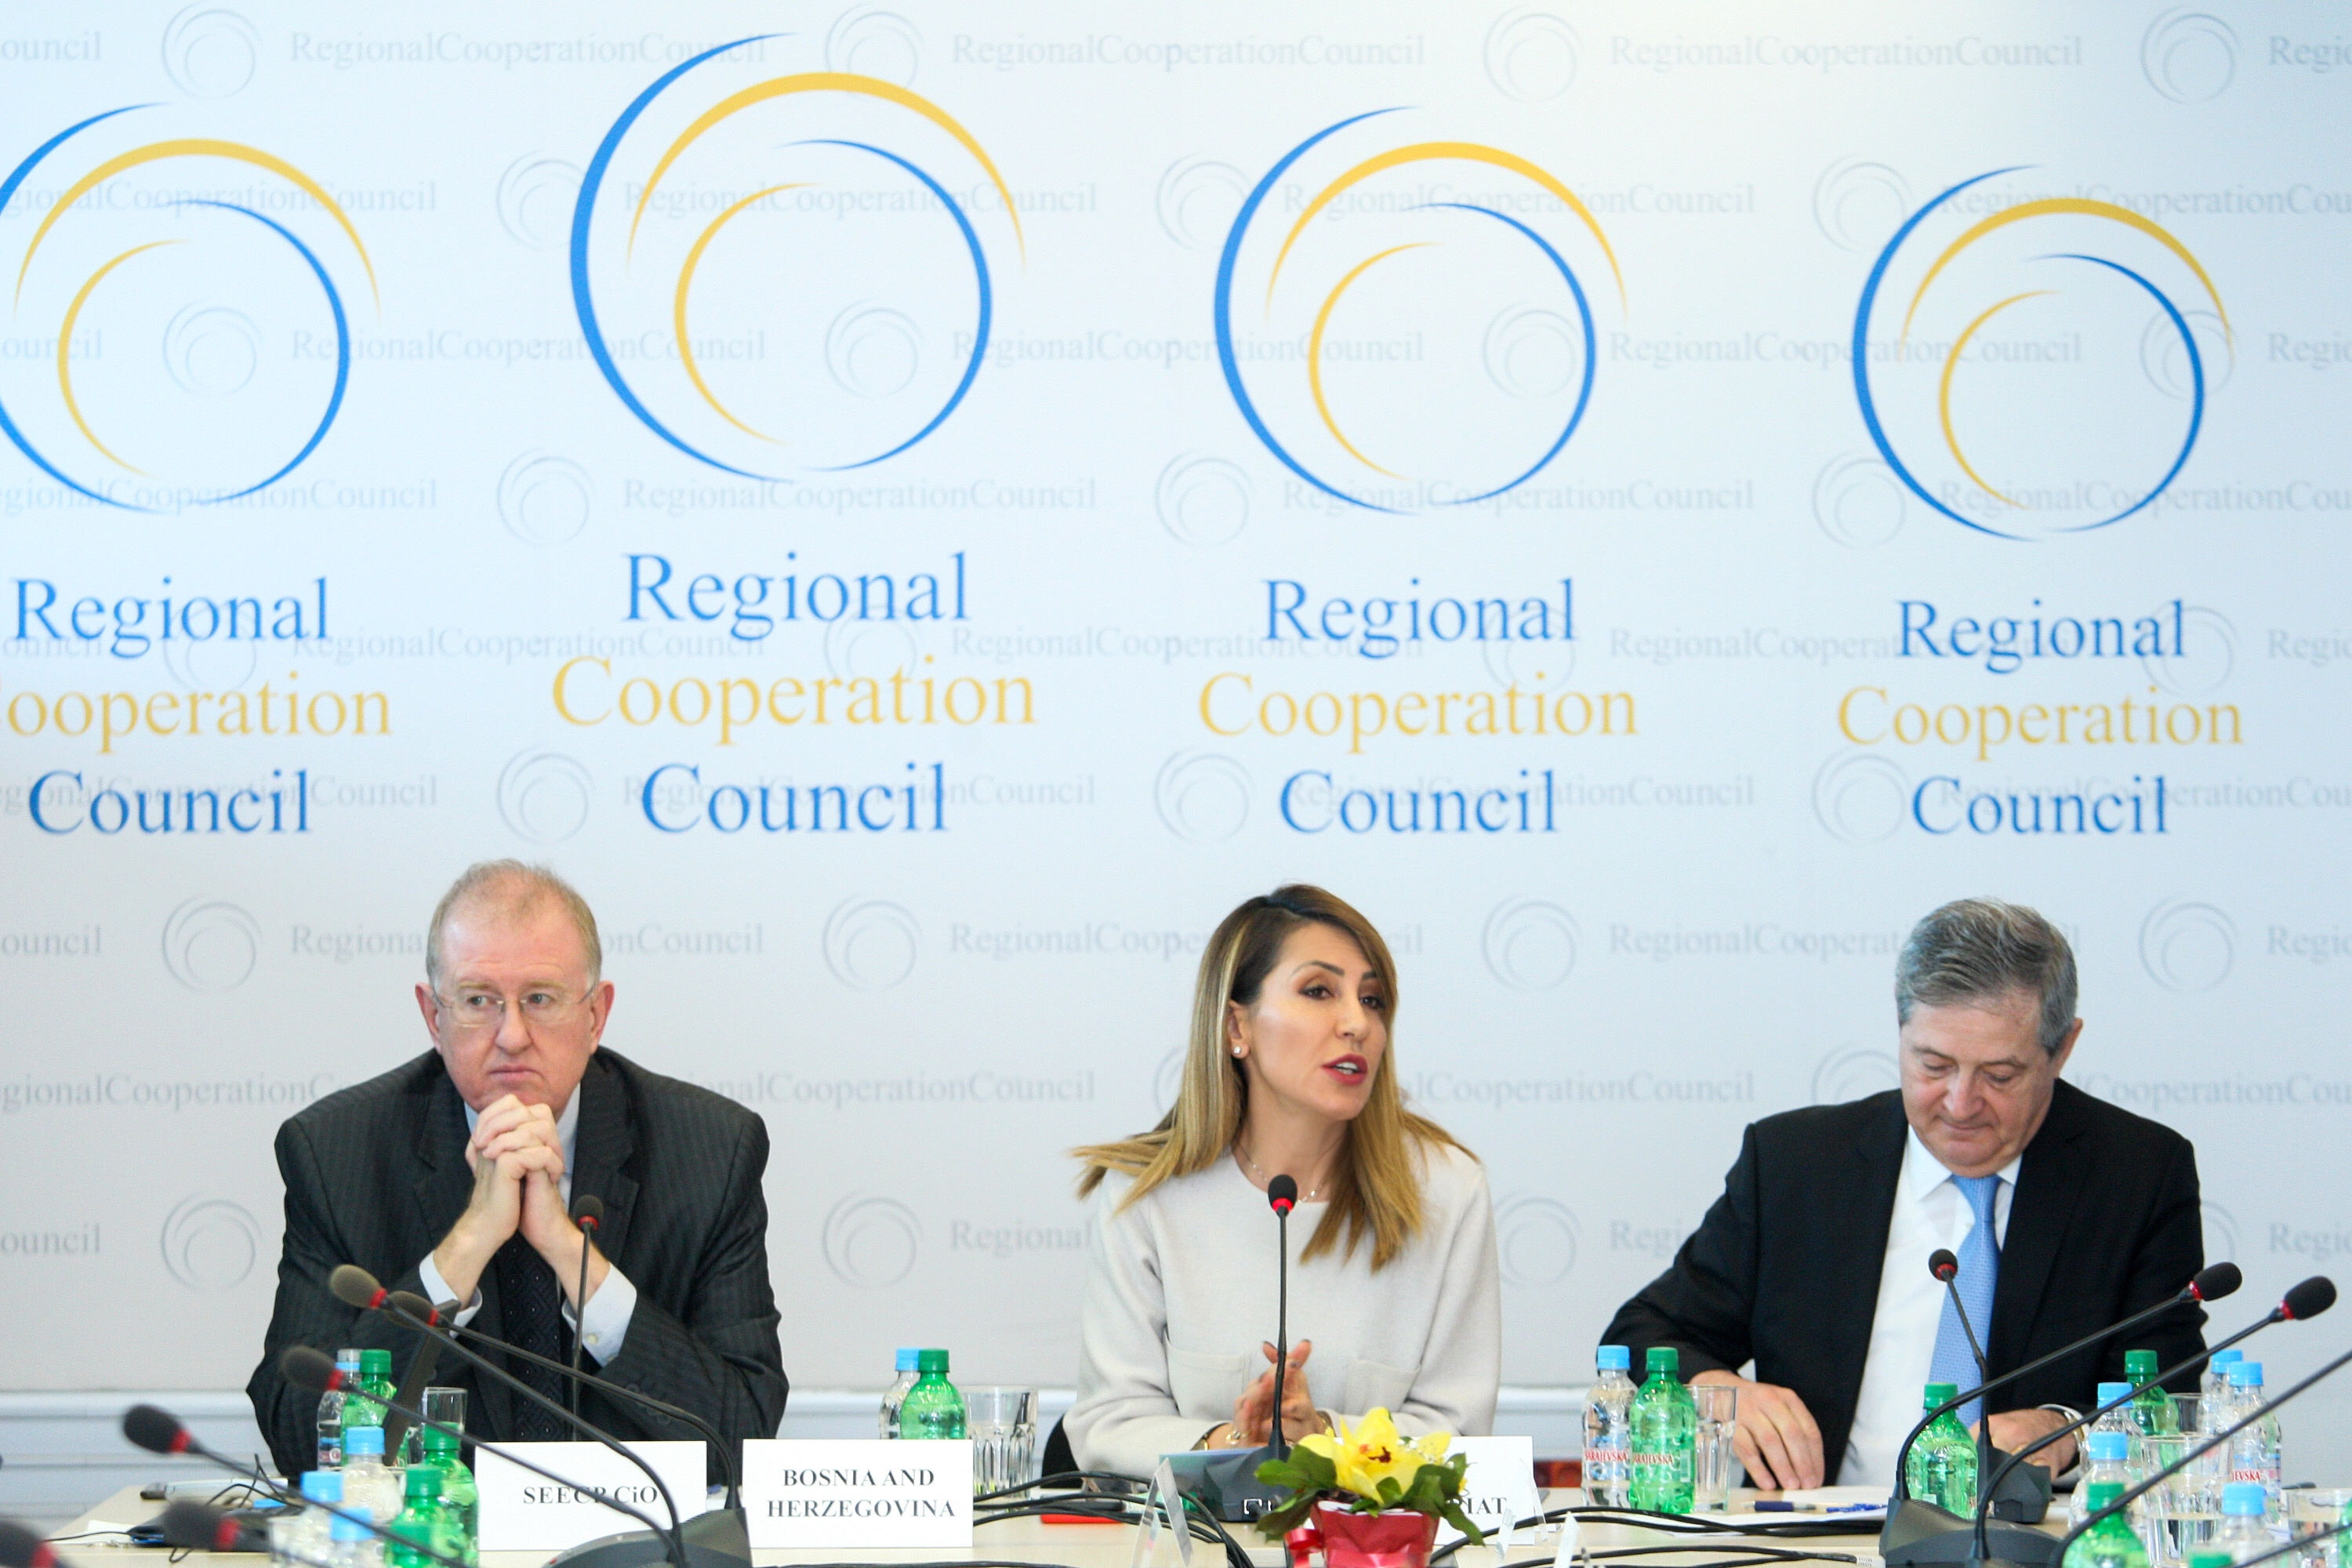 Secretary General of the RCC Majlinda Bregu, Milos Prica, Ambassador-at-large, MFA of Bosnia and Herzegovina, on behalf of the SEECP Chairmanship-in-Office currently held by Bosnia and Herzegovina (left) and RCC Deputy Secretary General Gazmend Turdiu (right), at the 36th Meeting of the RCC Board, held in Sarajevo on 14 March 2019 (Photo: RCC/Selma Ahatovic-Lihic)